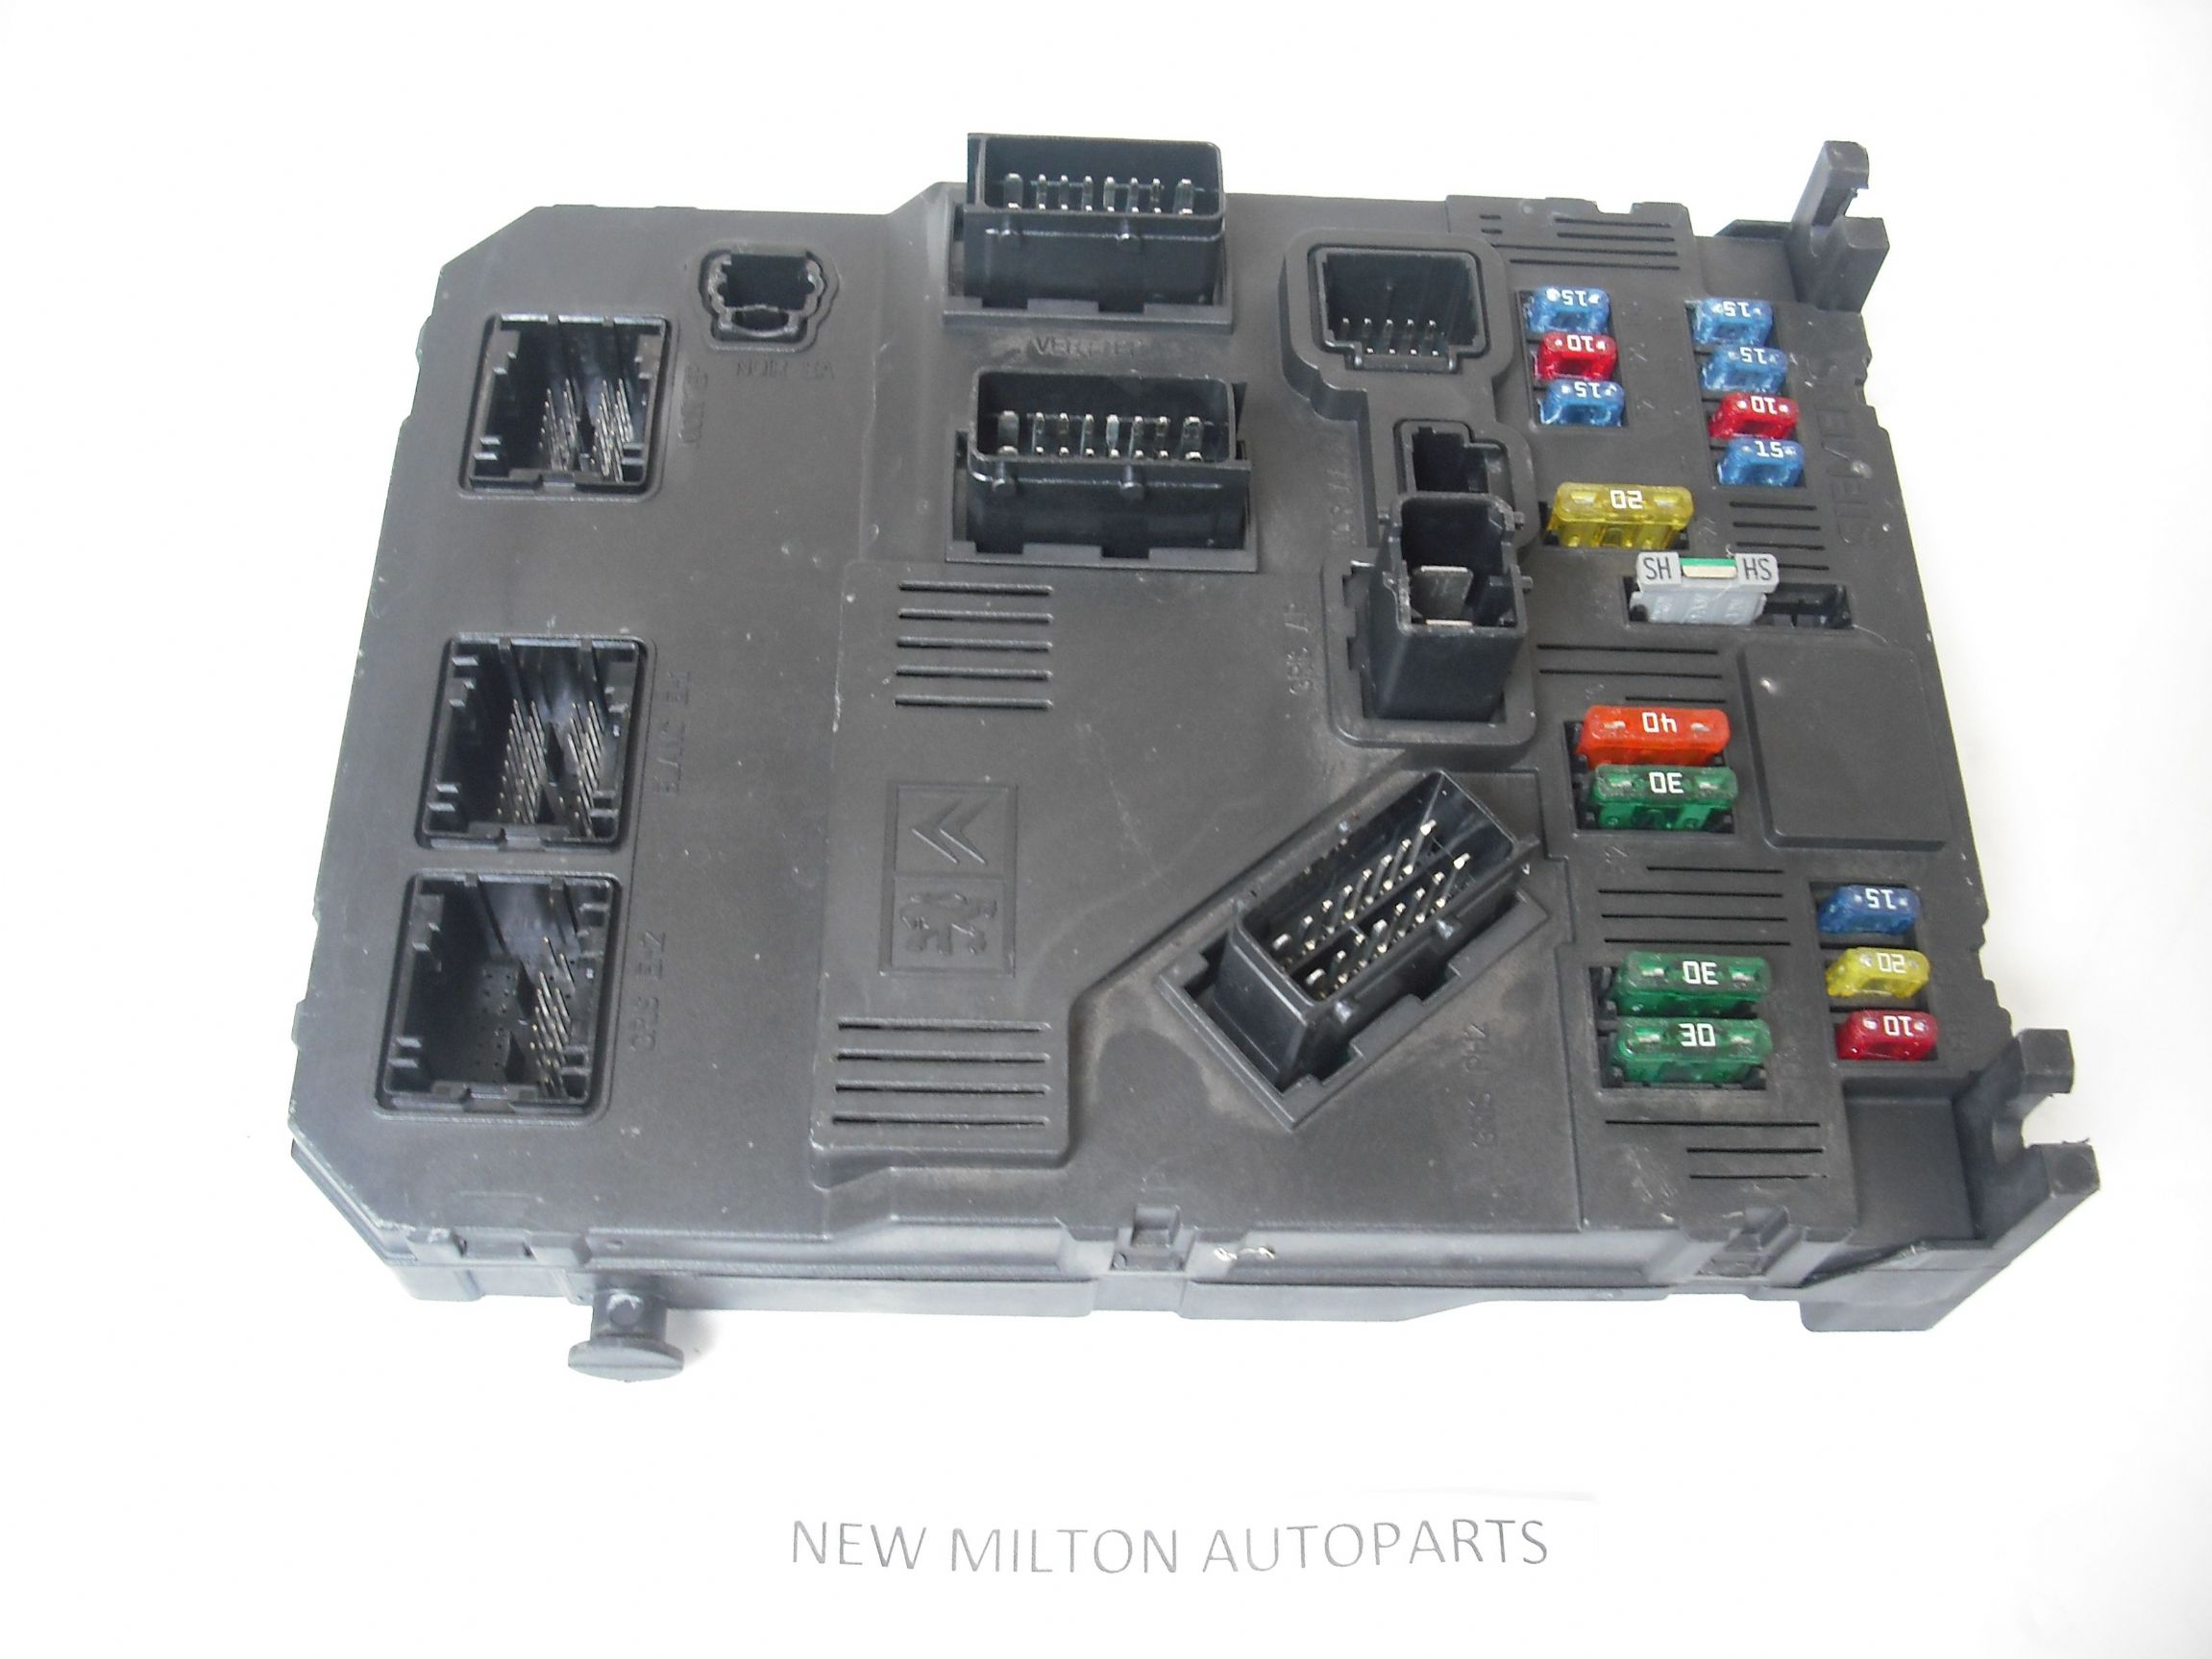 Peugeot Partner Combi Fuse Box Comfort Controller Bsi E Hg Sorry Out Of Stock P on 99 Vw Beetle Fuse Diagram